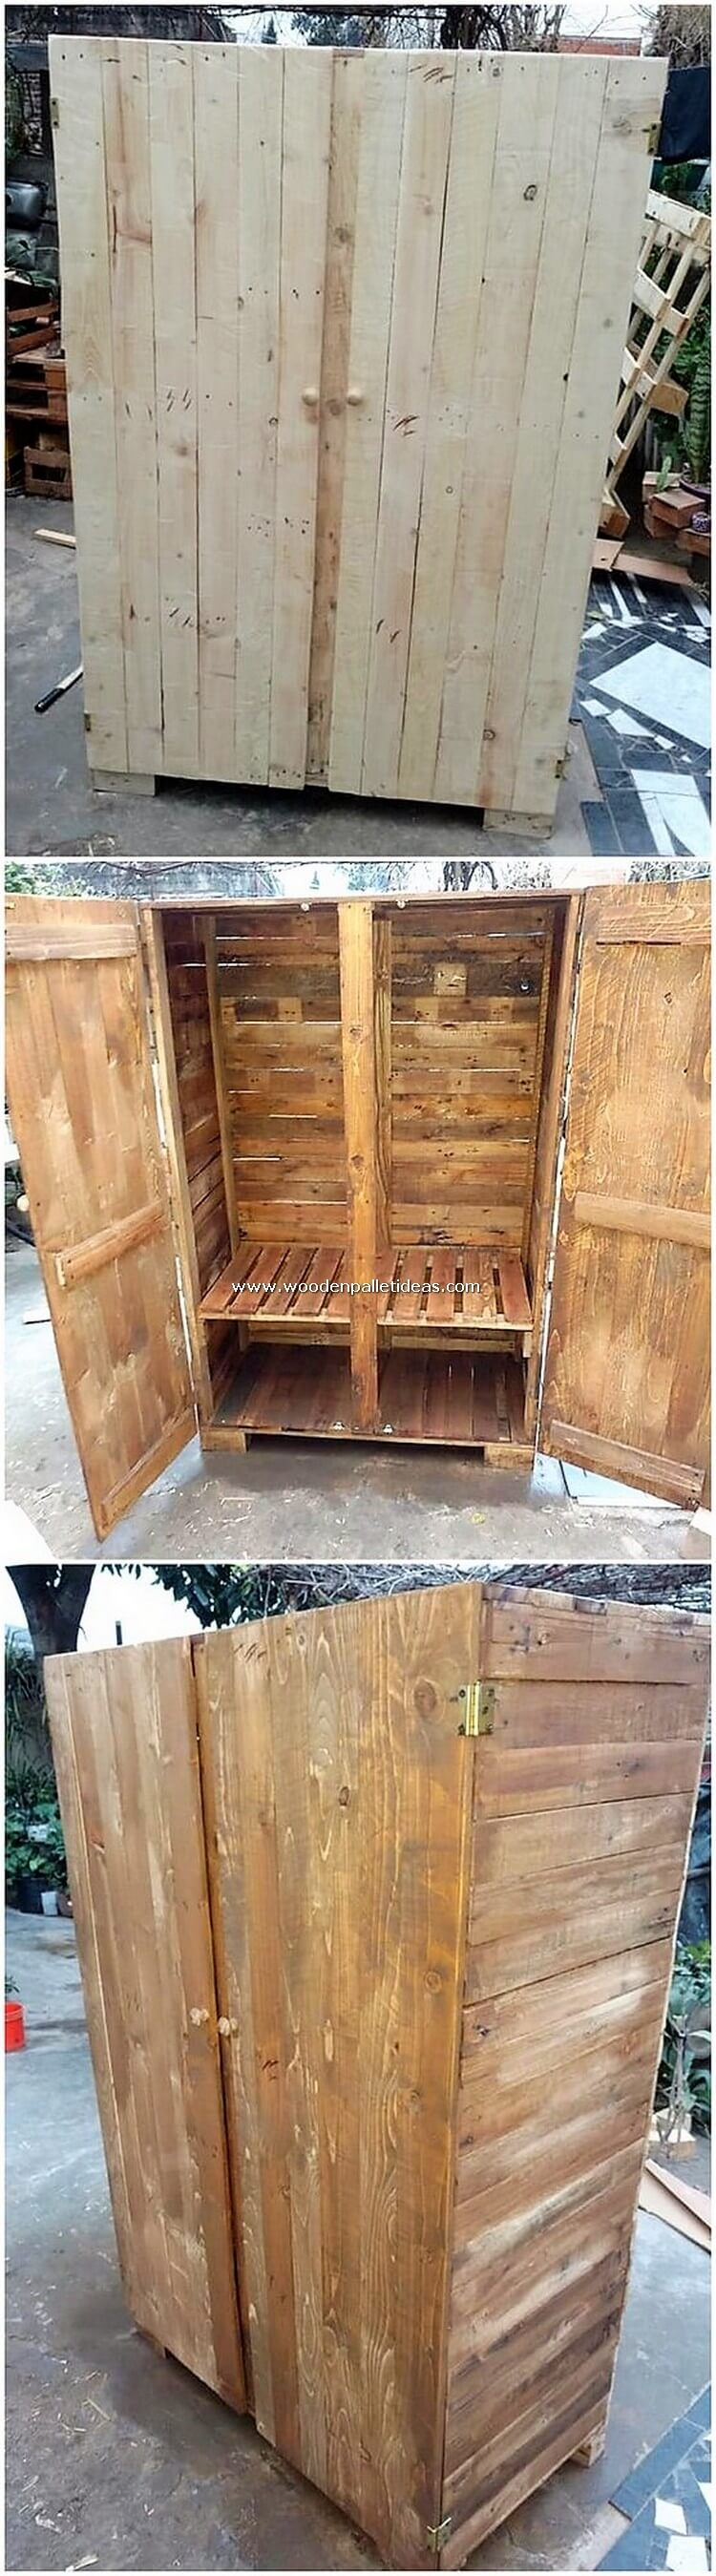 Pallet-Closet-or-Cabinet